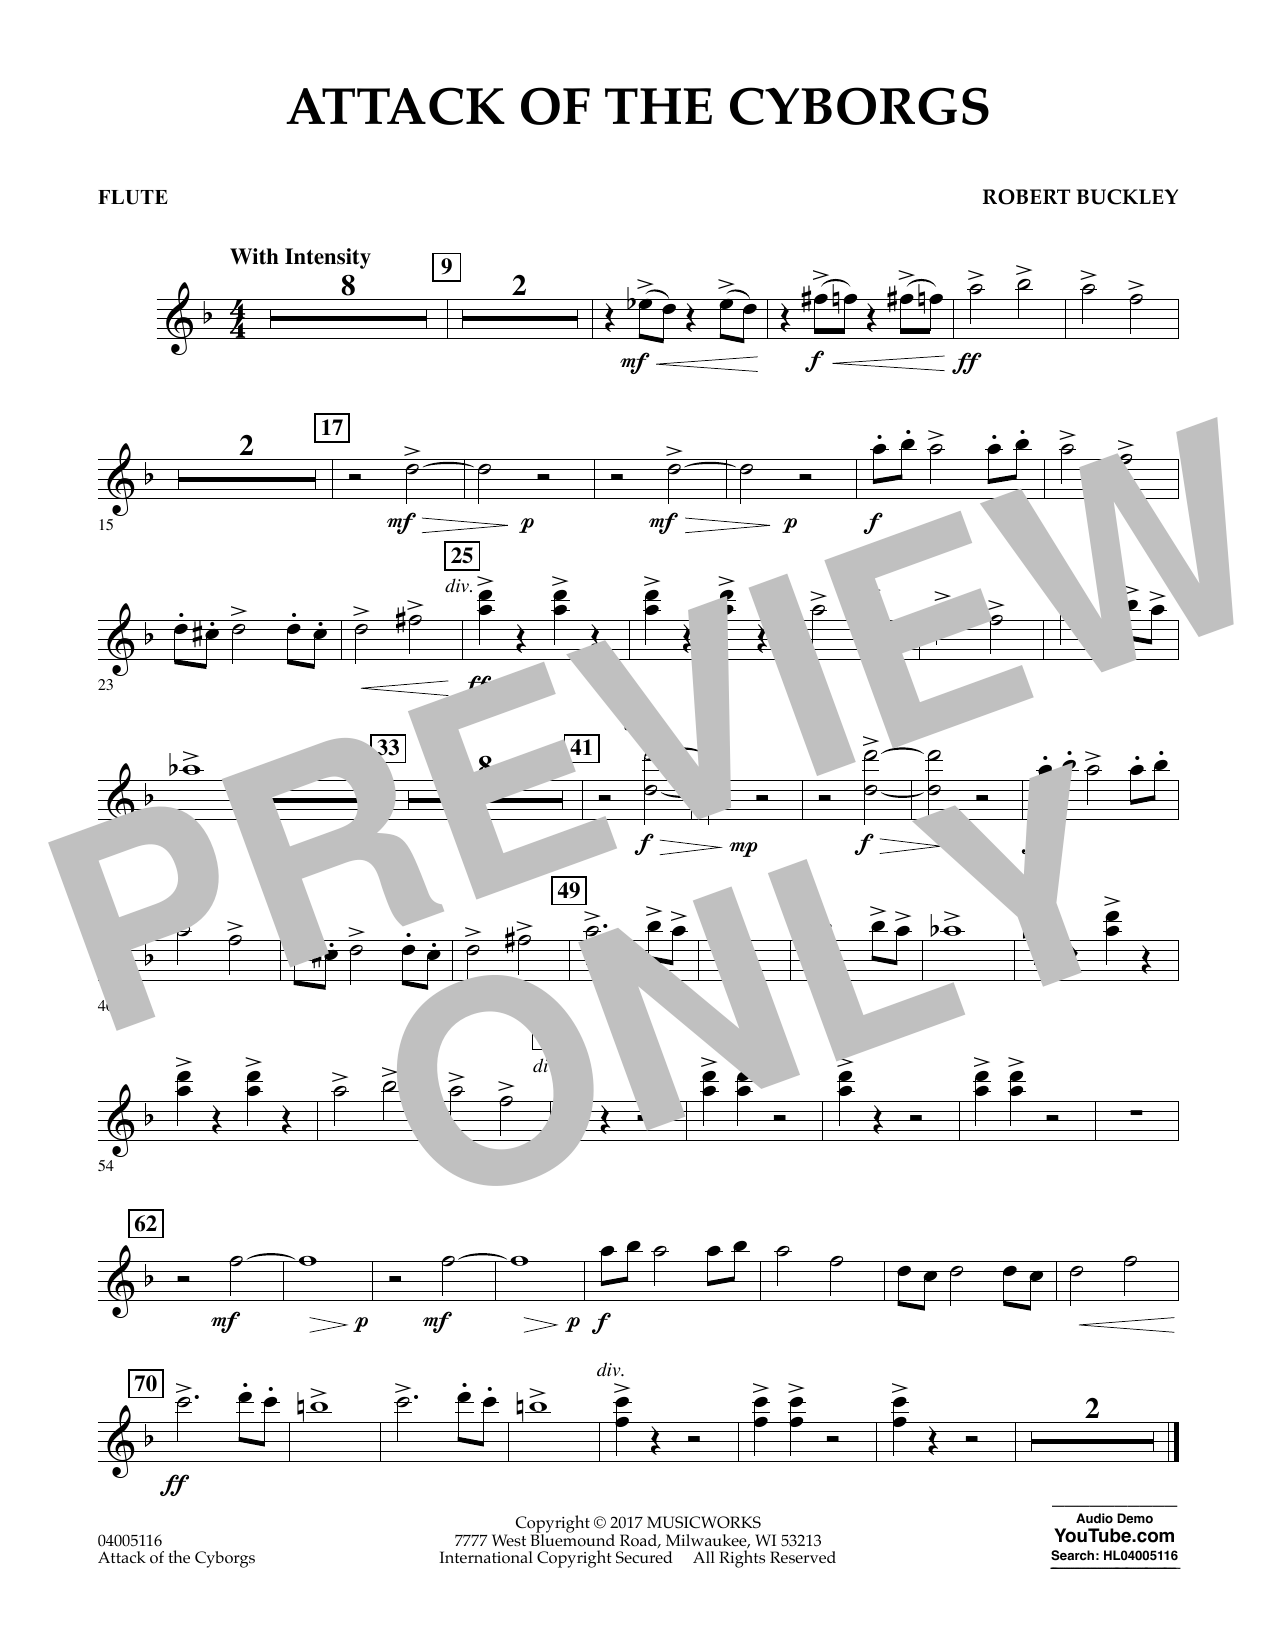 Robert Buckley Attack of the Cyborgs - Flute sheet music notes and chords. Download Printable PDF.